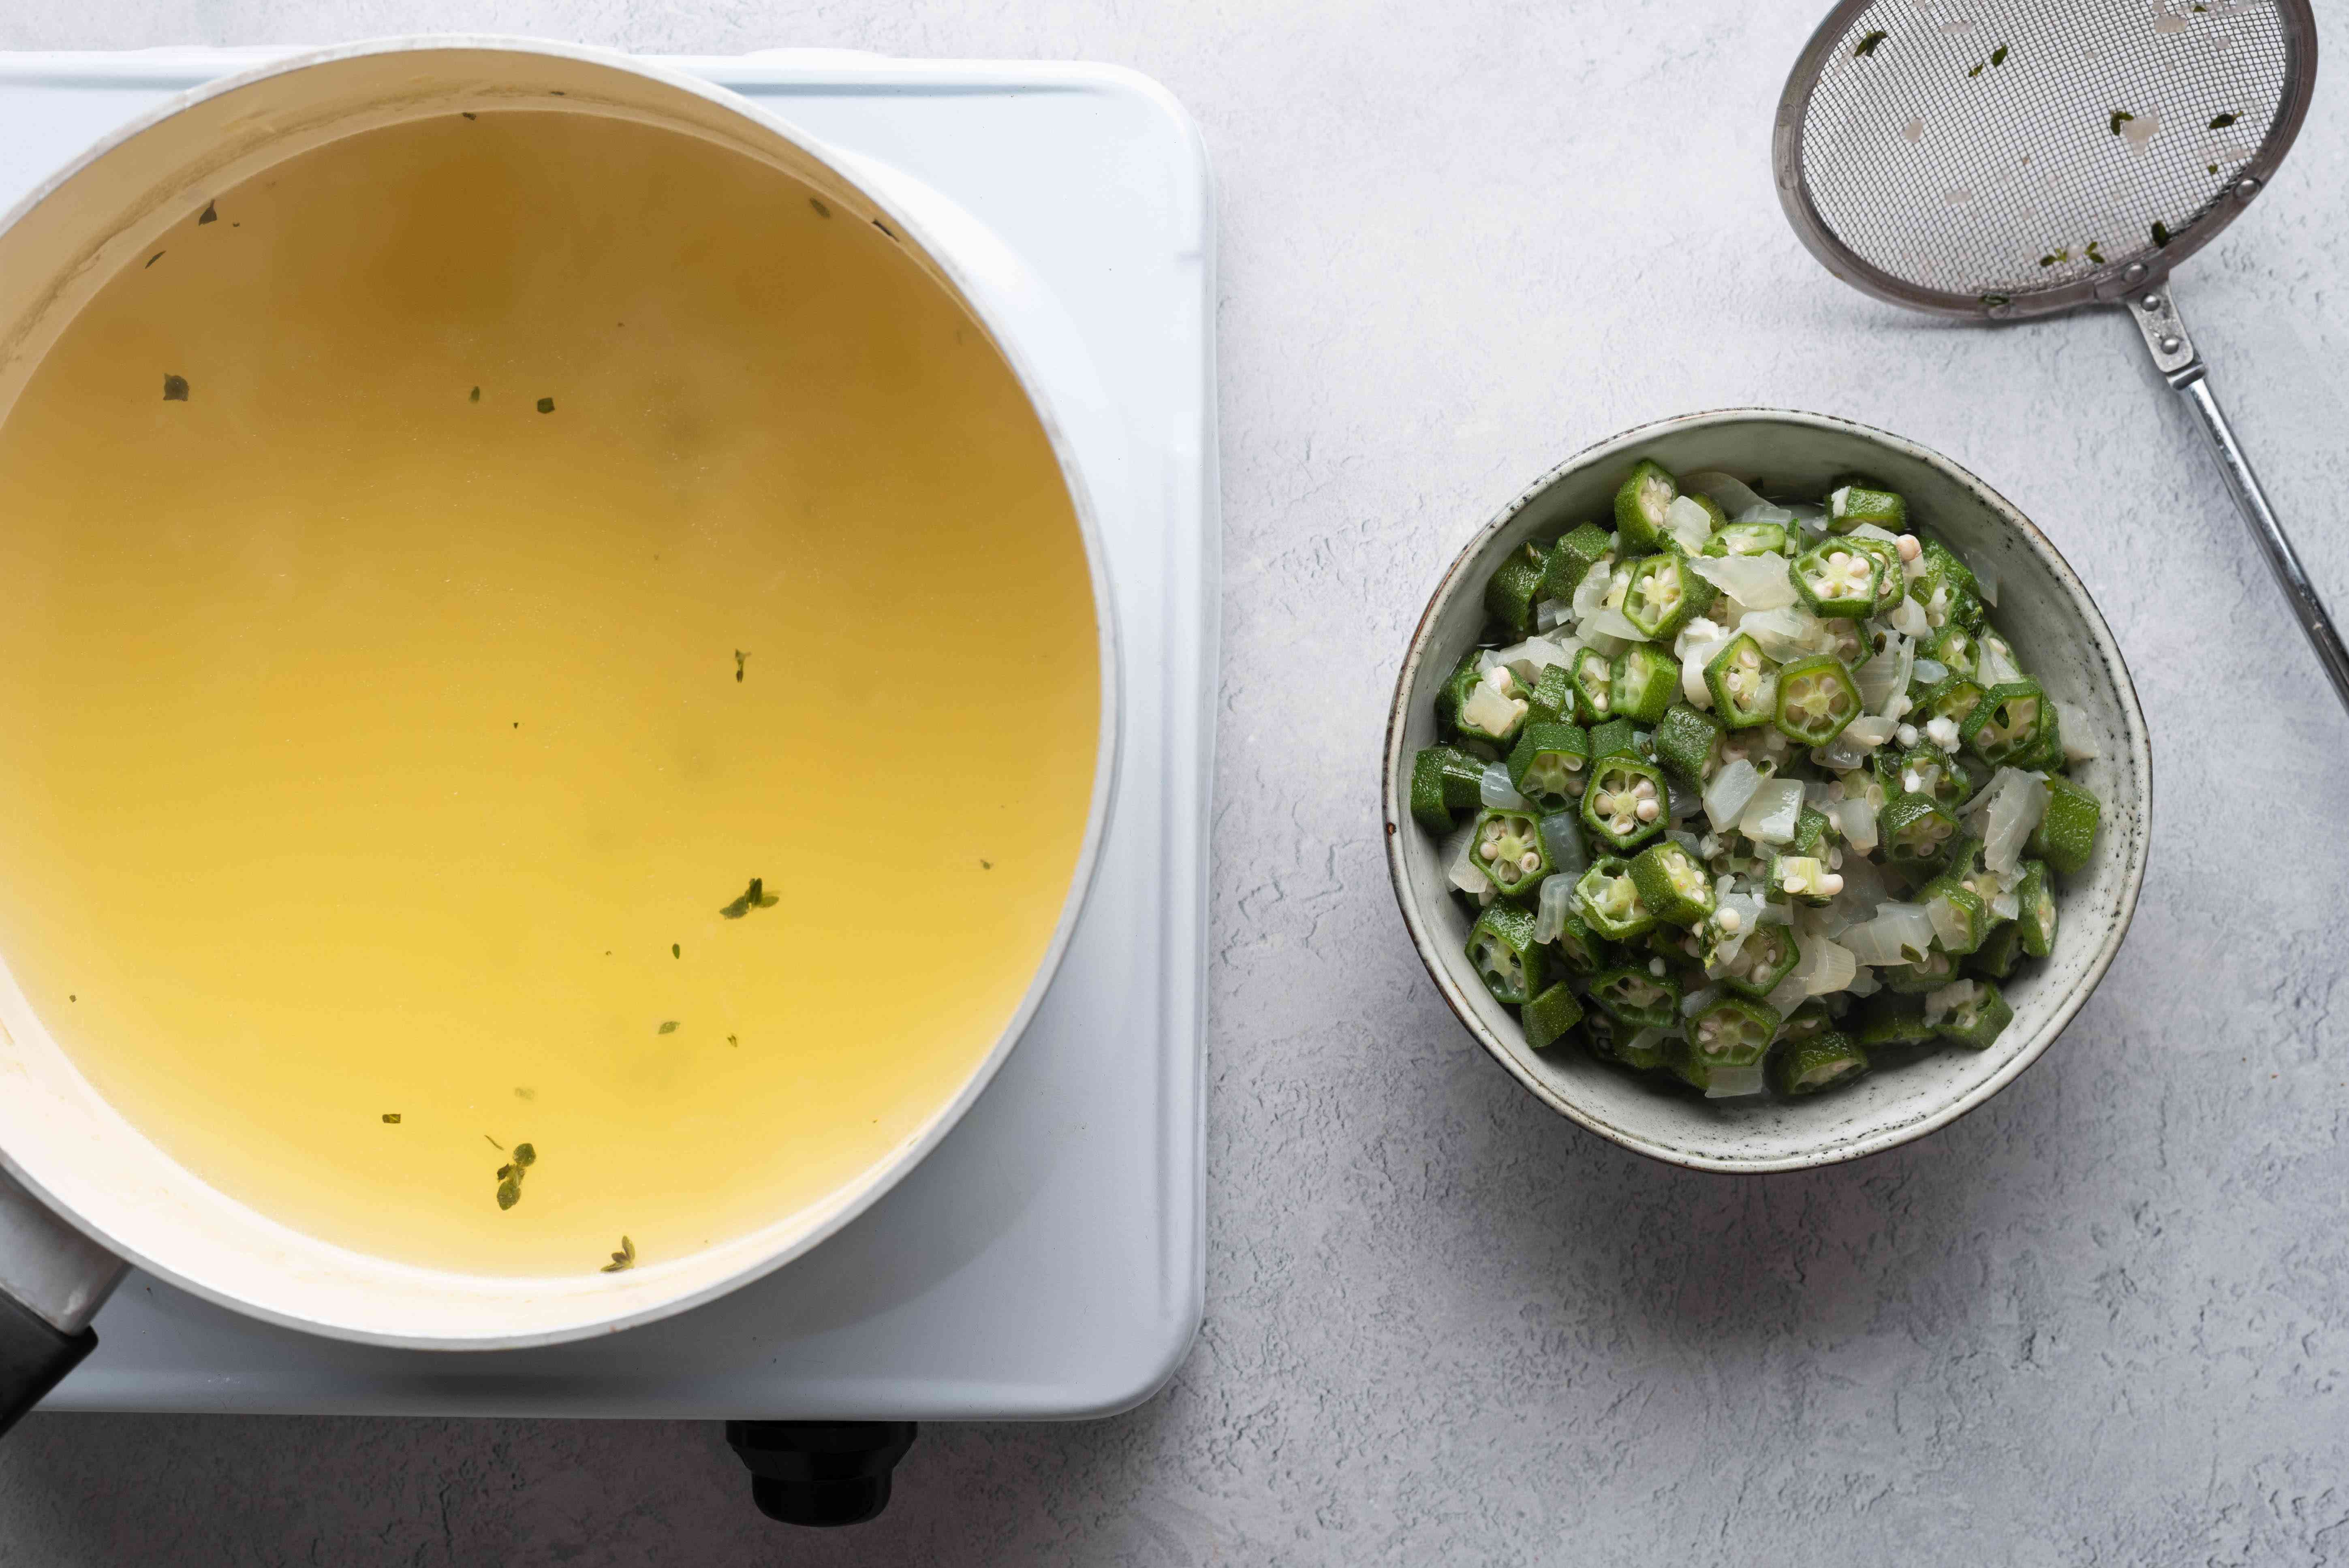 okra removed from liquid in a pot